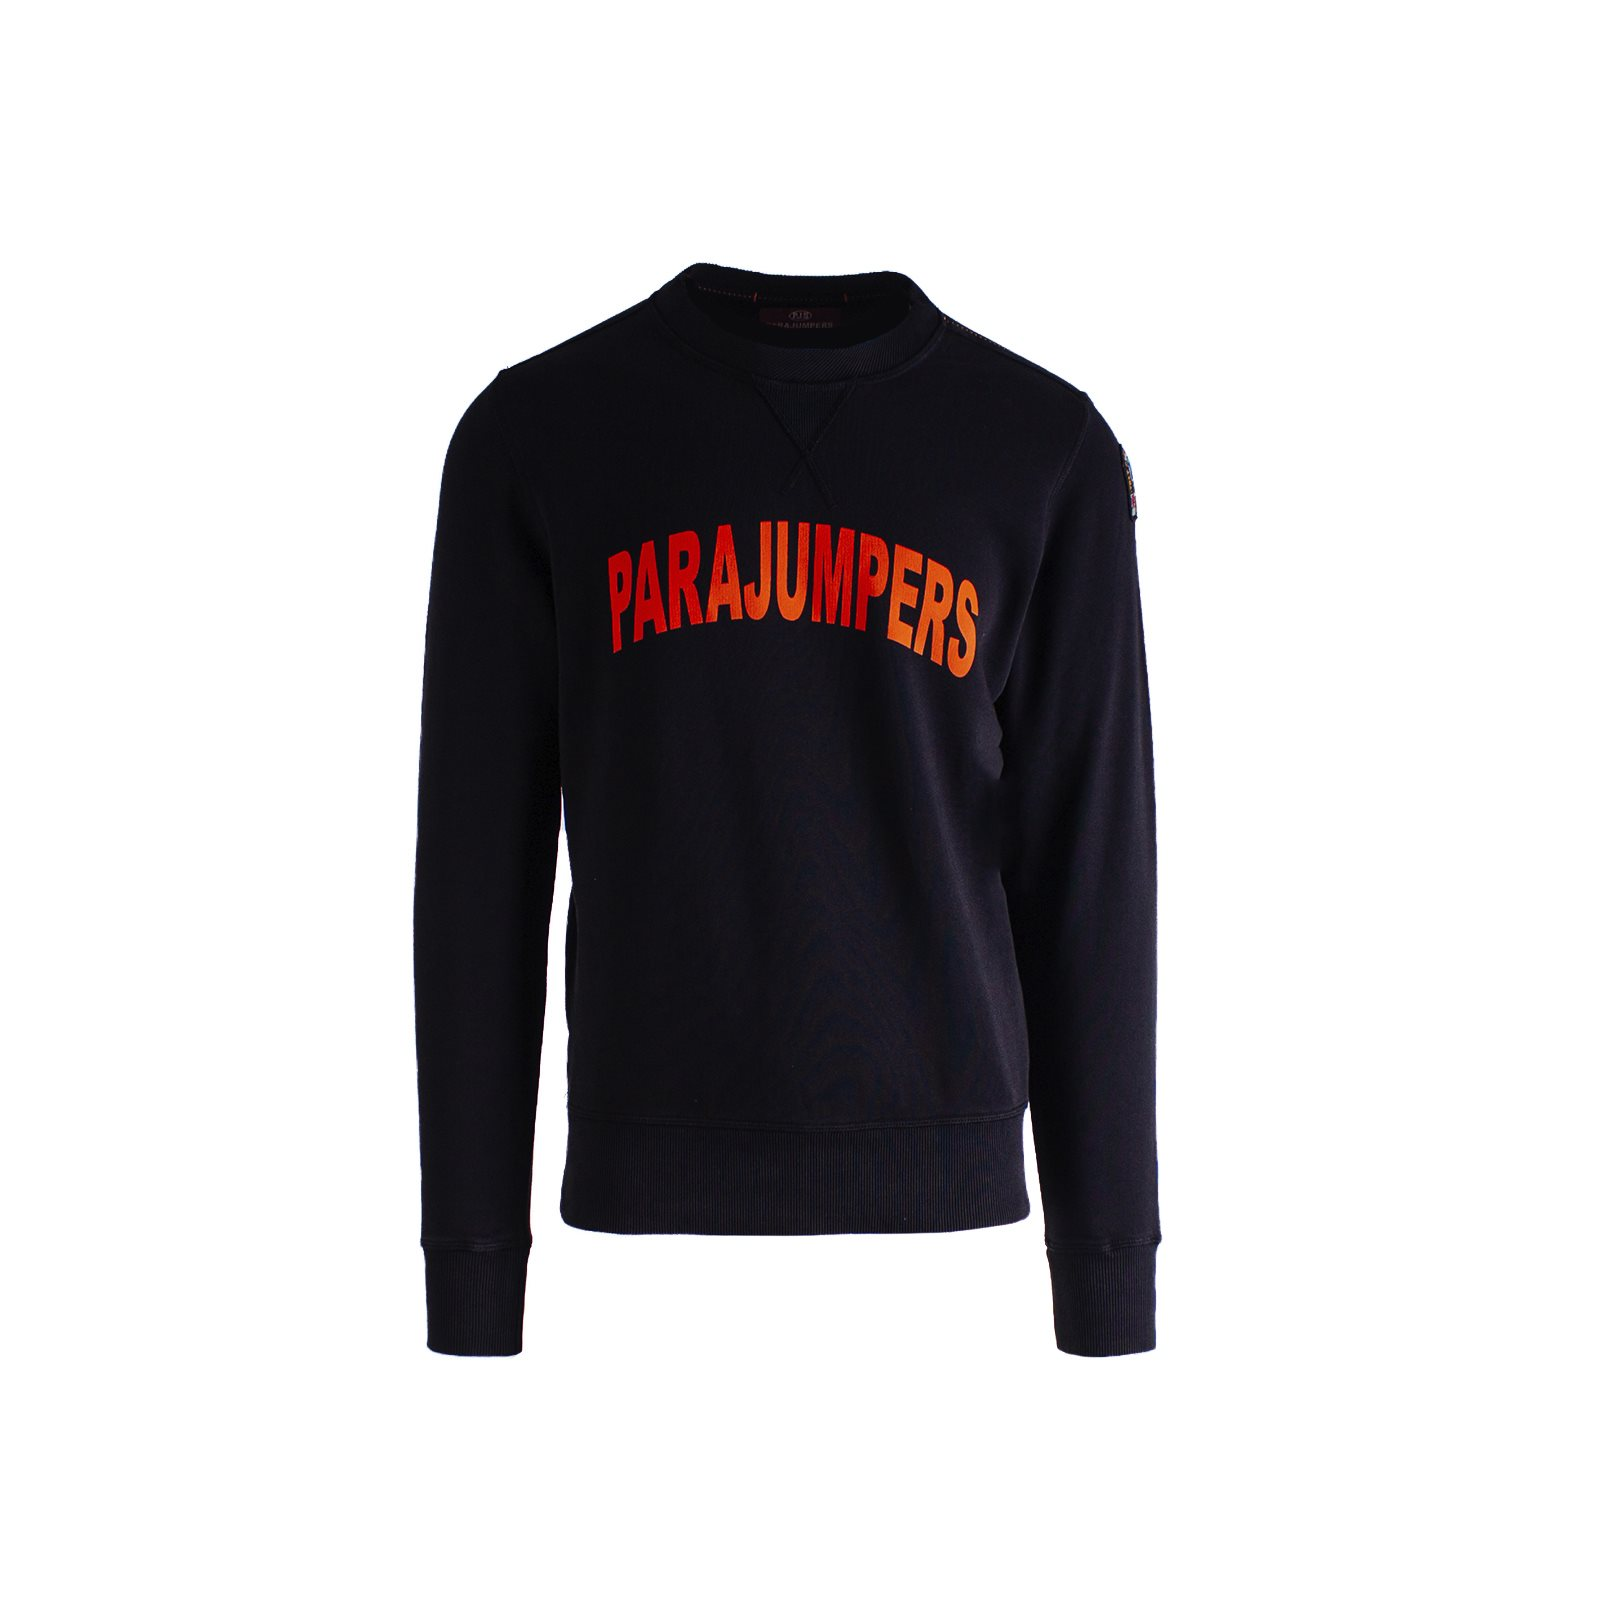 Parajumpers Sweater